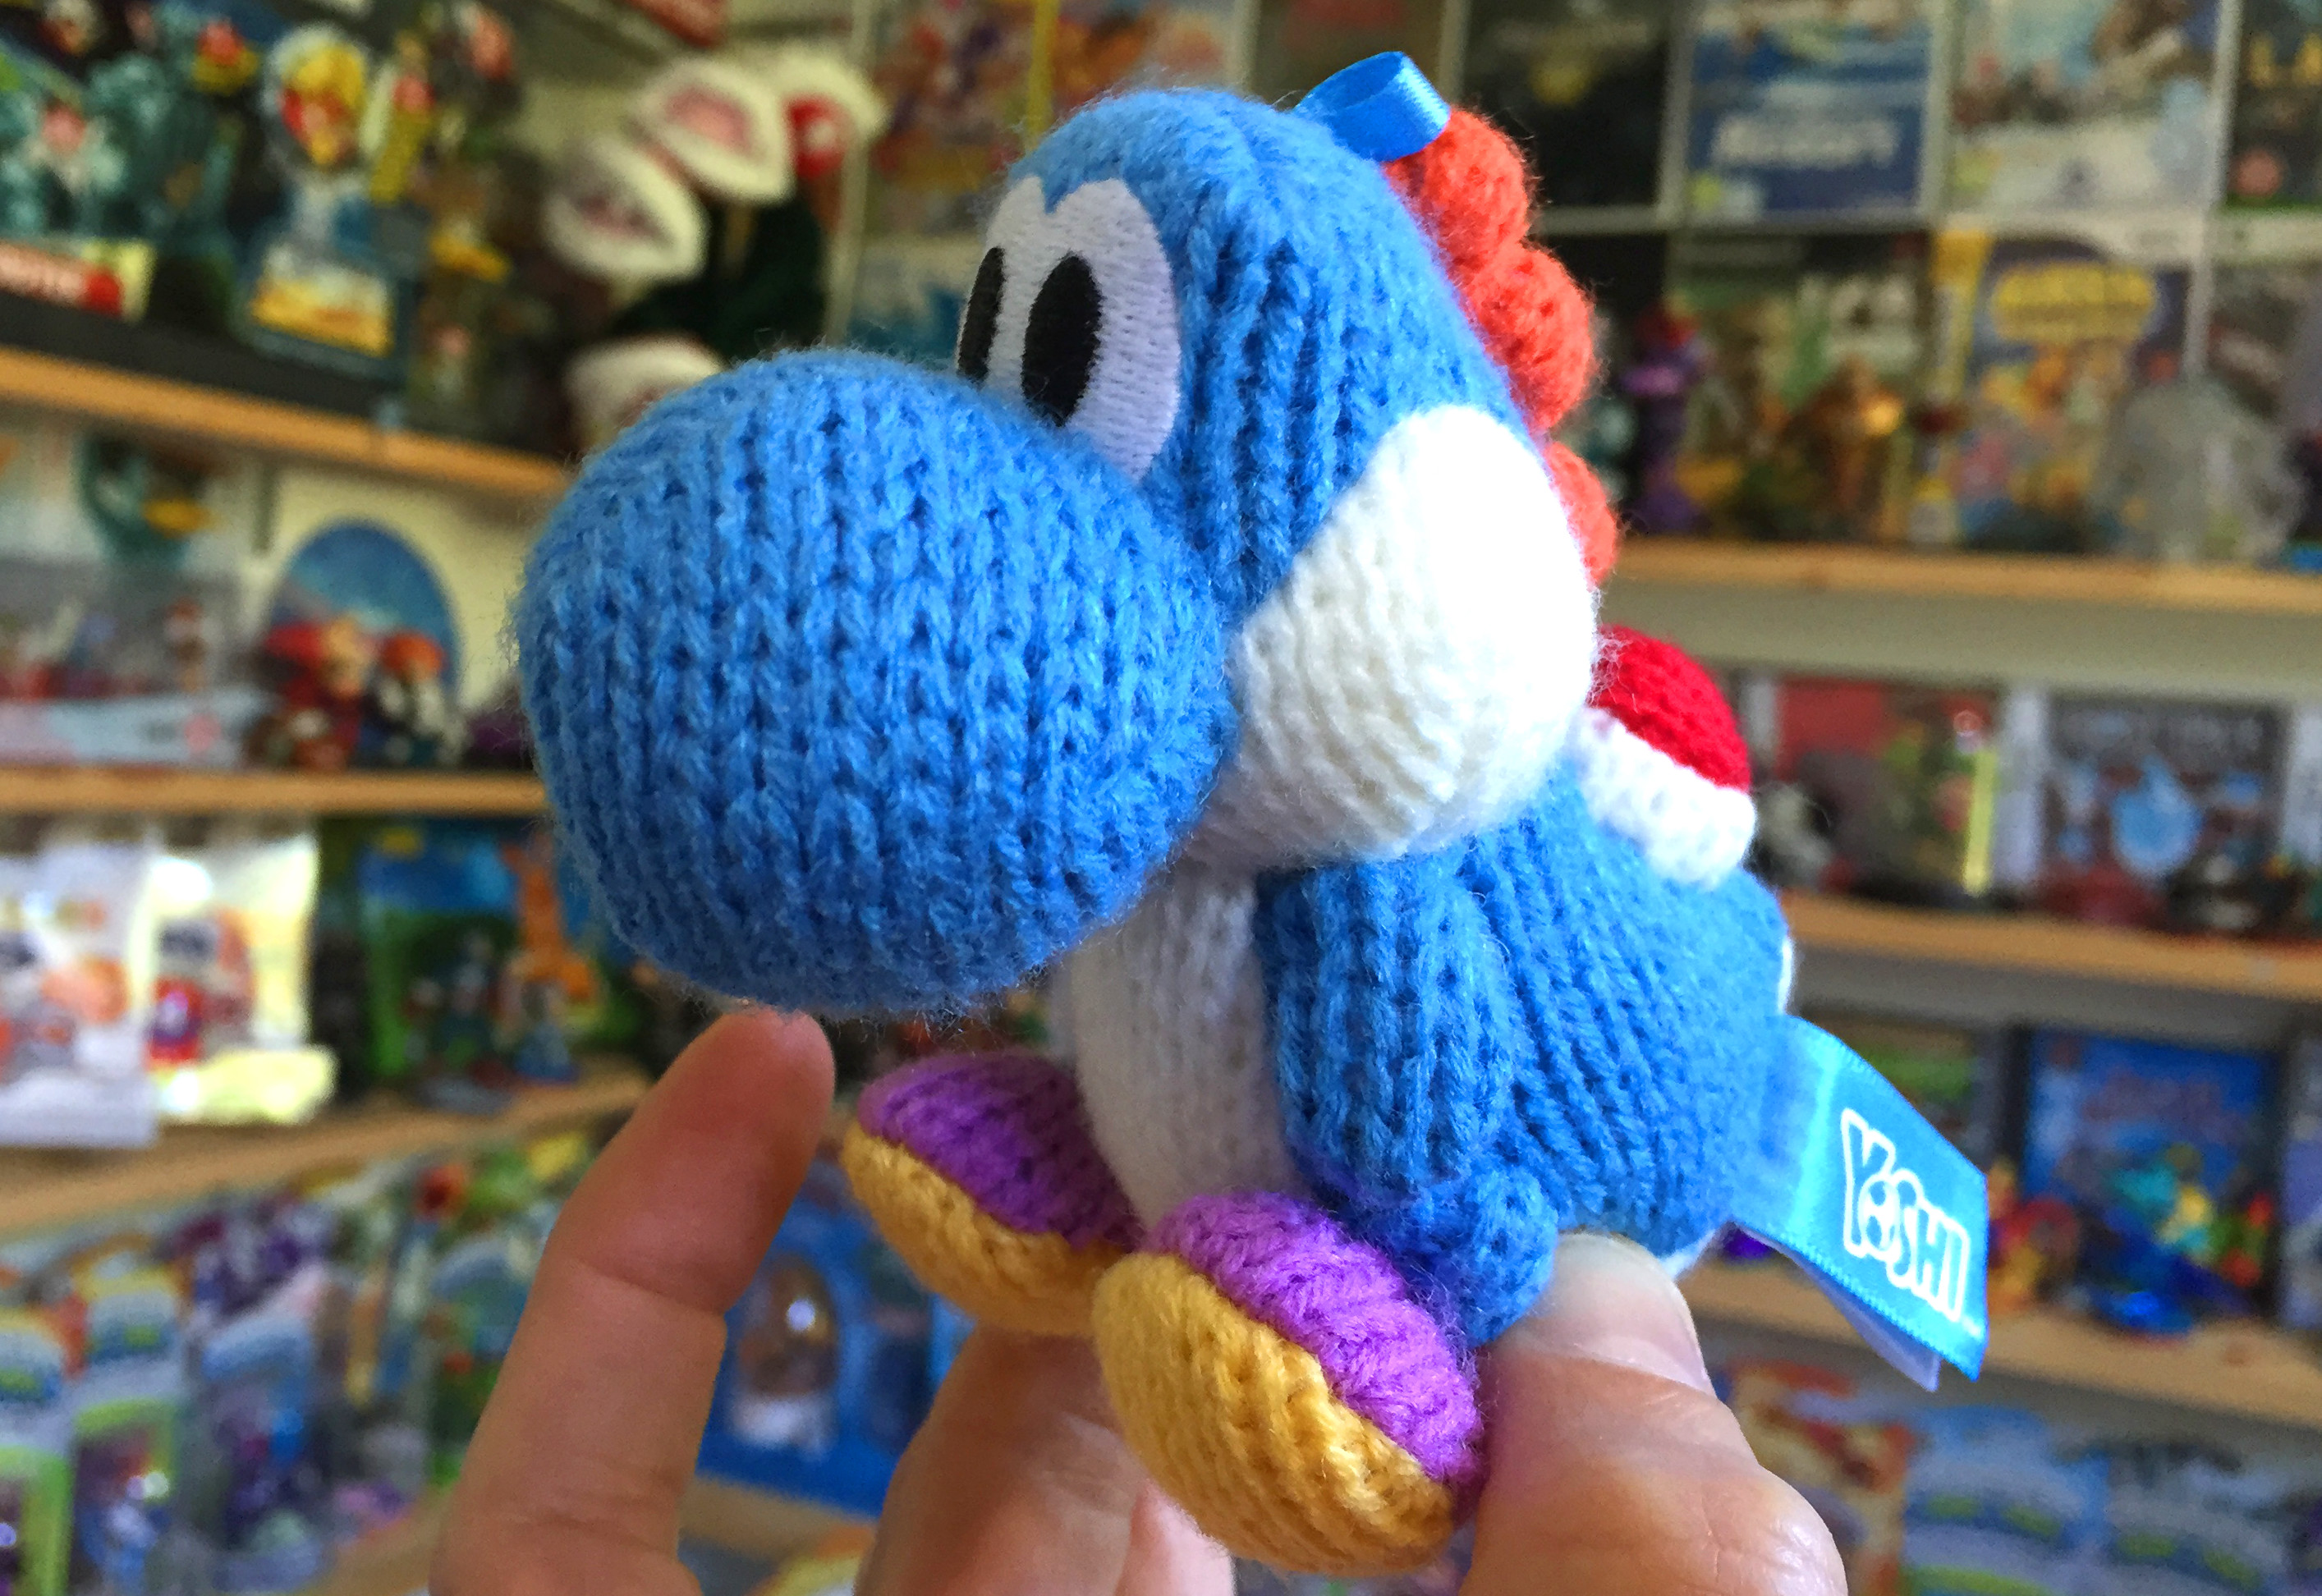 Yoshi amiibo is Woolly and base-less